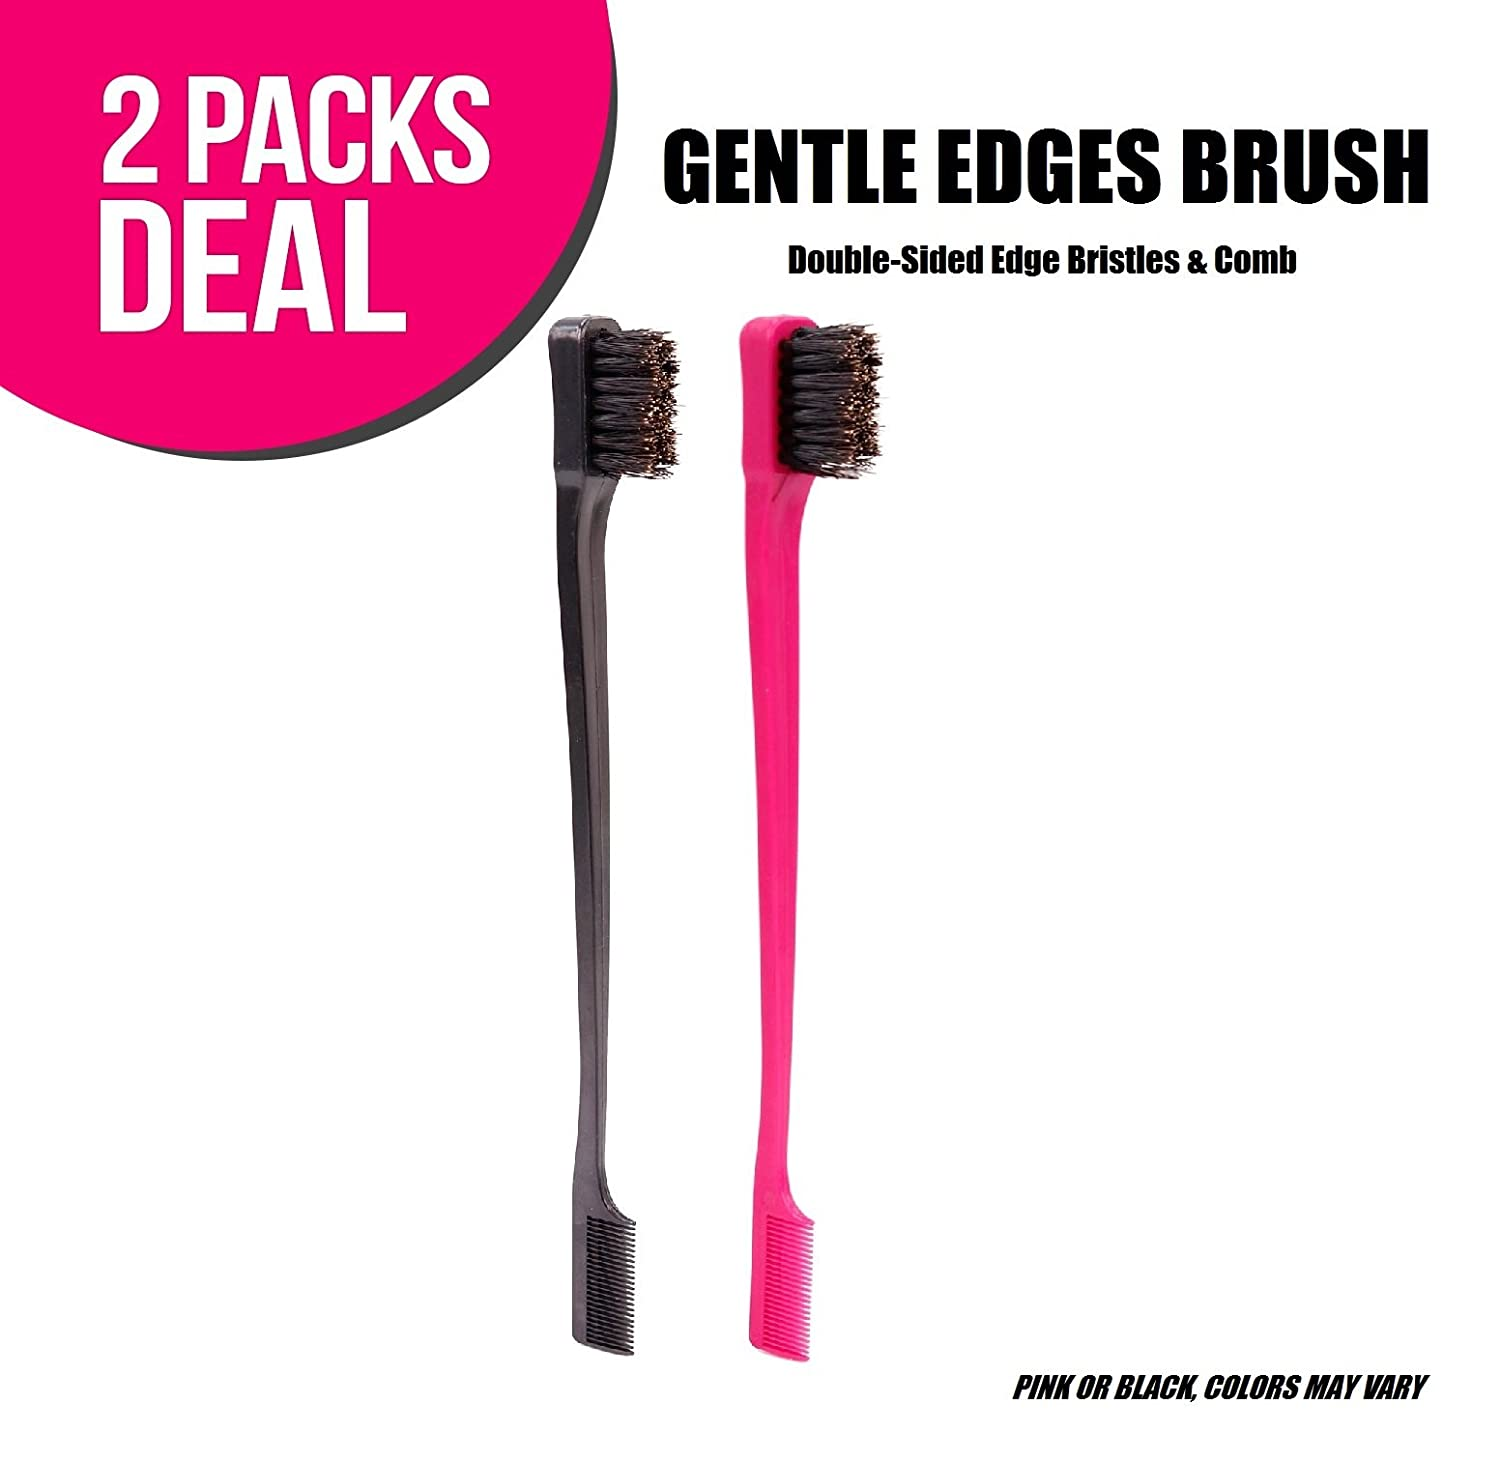 (2-PACKS) Gentle Edges Brush, Double-Sided Edge Bristles & Comb 2-in-1, Same as Camryn's BFF